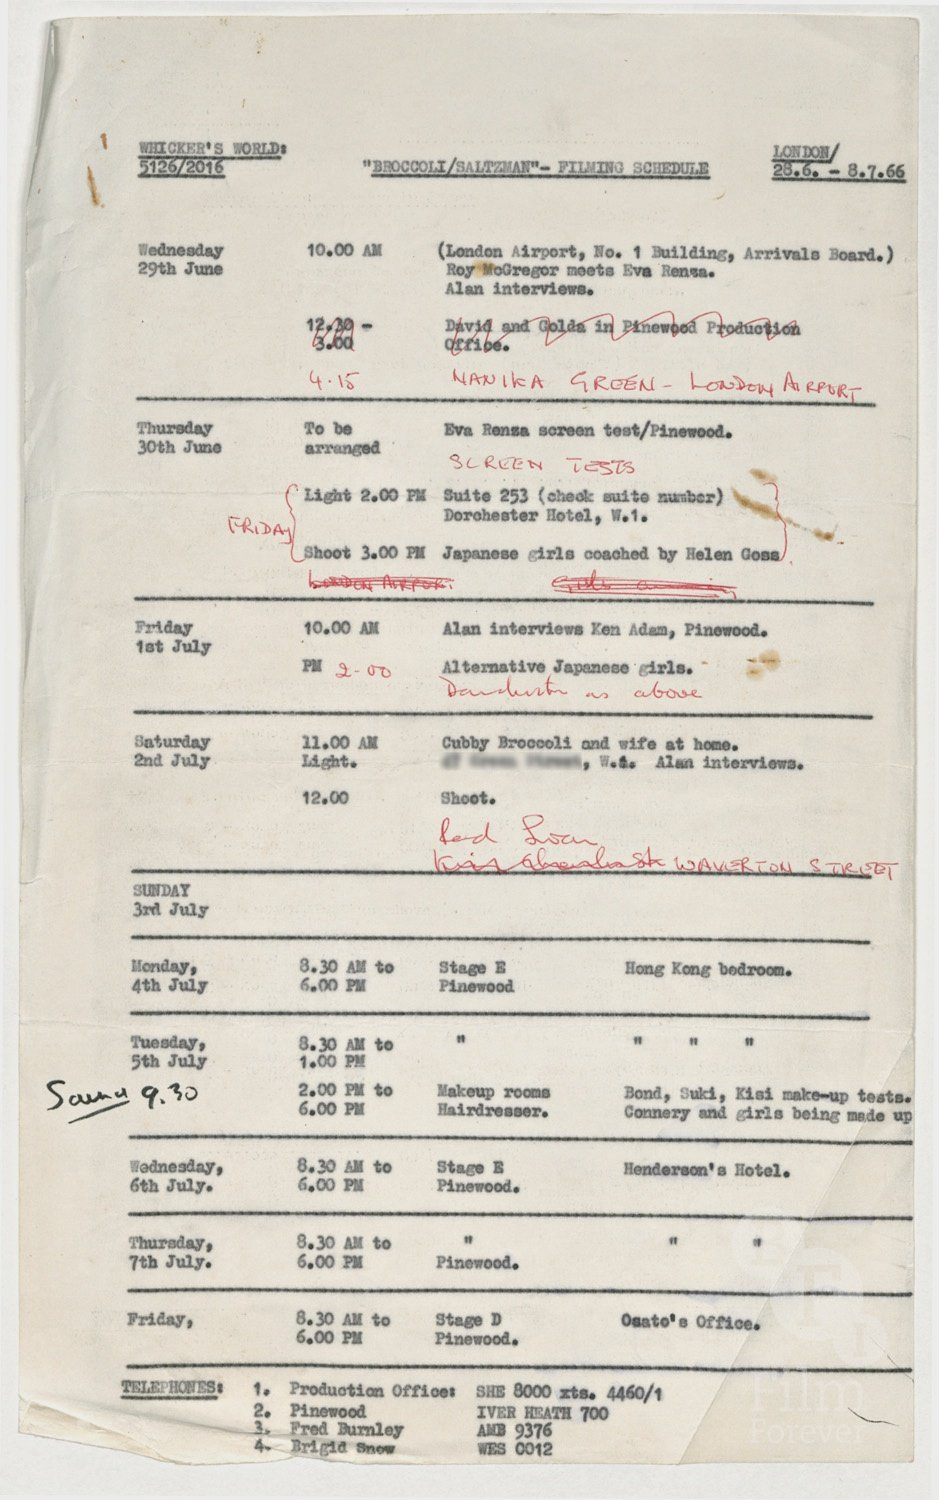 Shooting schedule for interviews with Harry Saltzman and Albert 'Cubby' Broccoli The World of James Bond, 1967